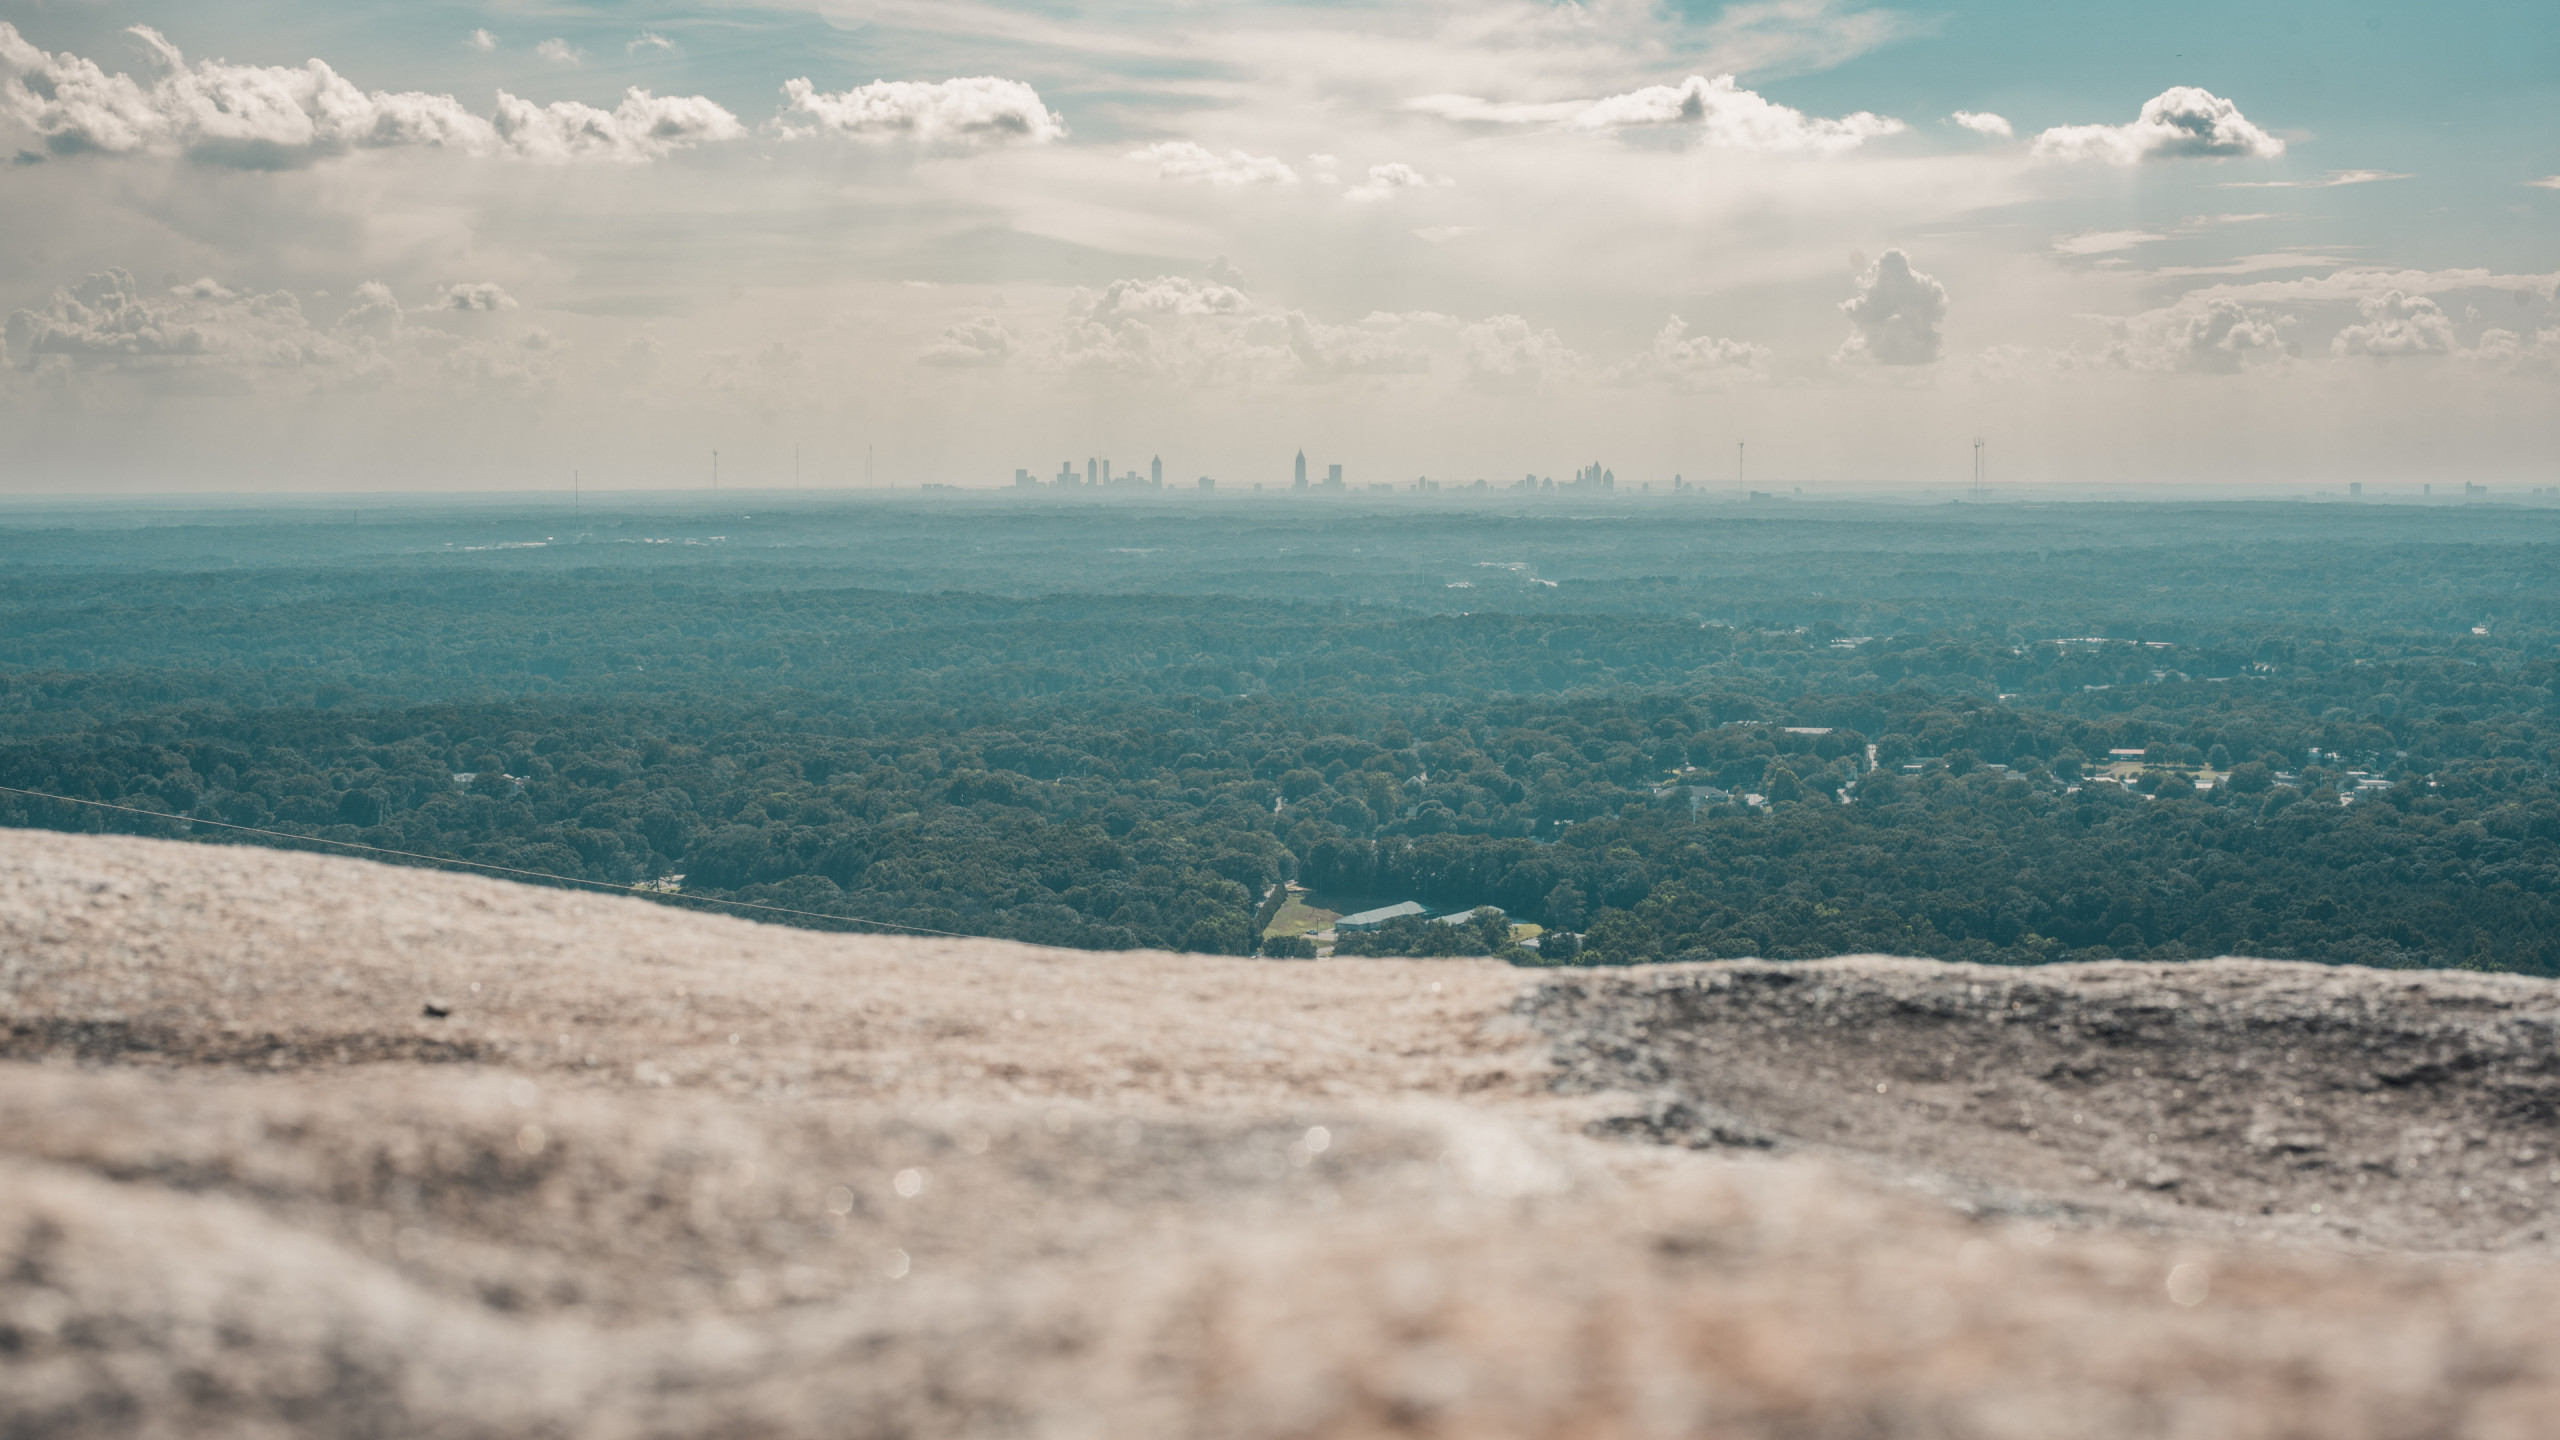 Top of Stone Mountain, Georgia wallpaper 2560x1440